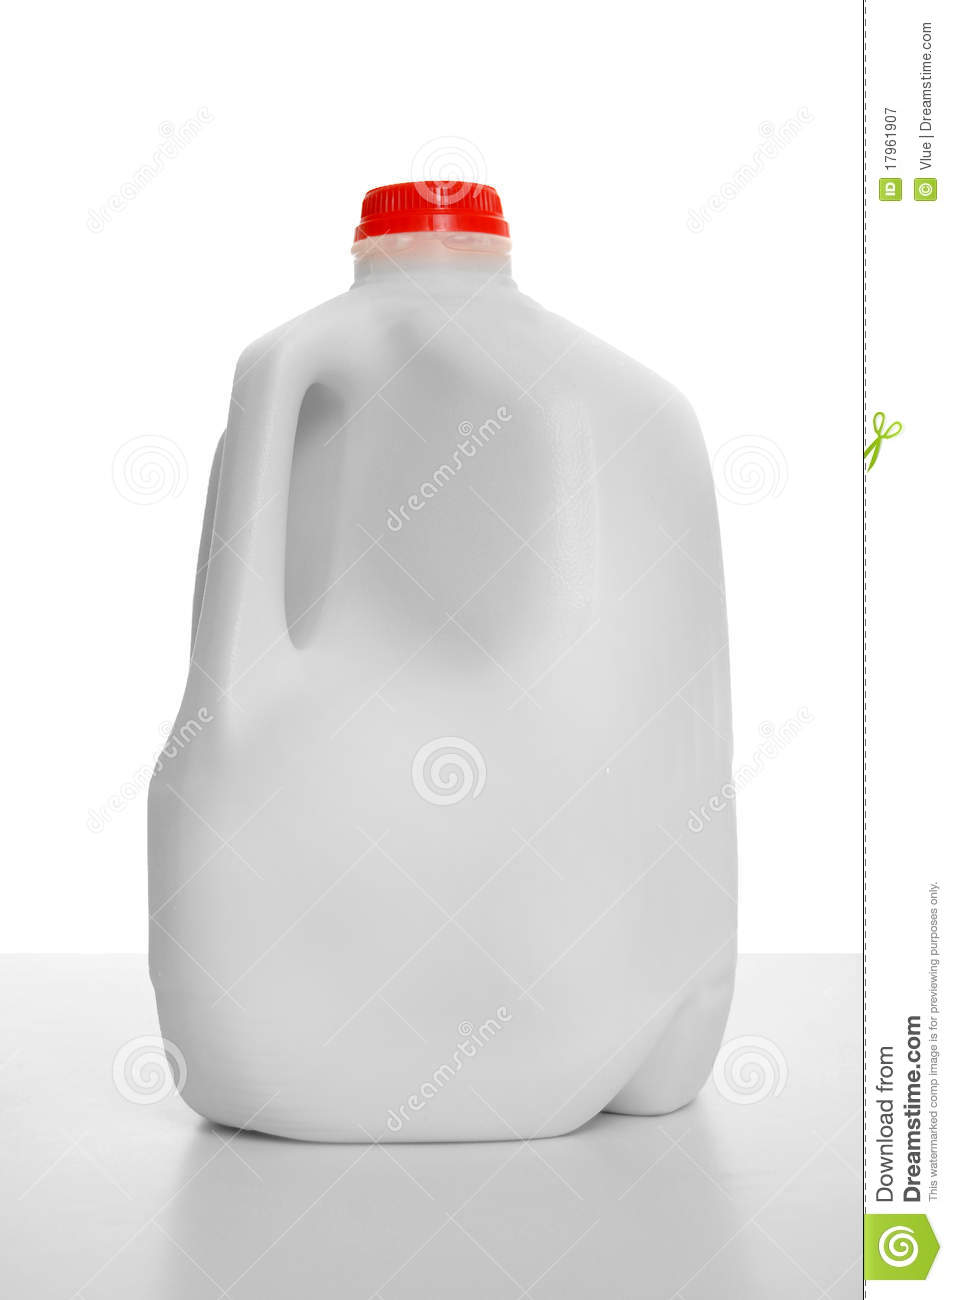 Milk Carton Stock Image Image Of Semi Skimmed Food